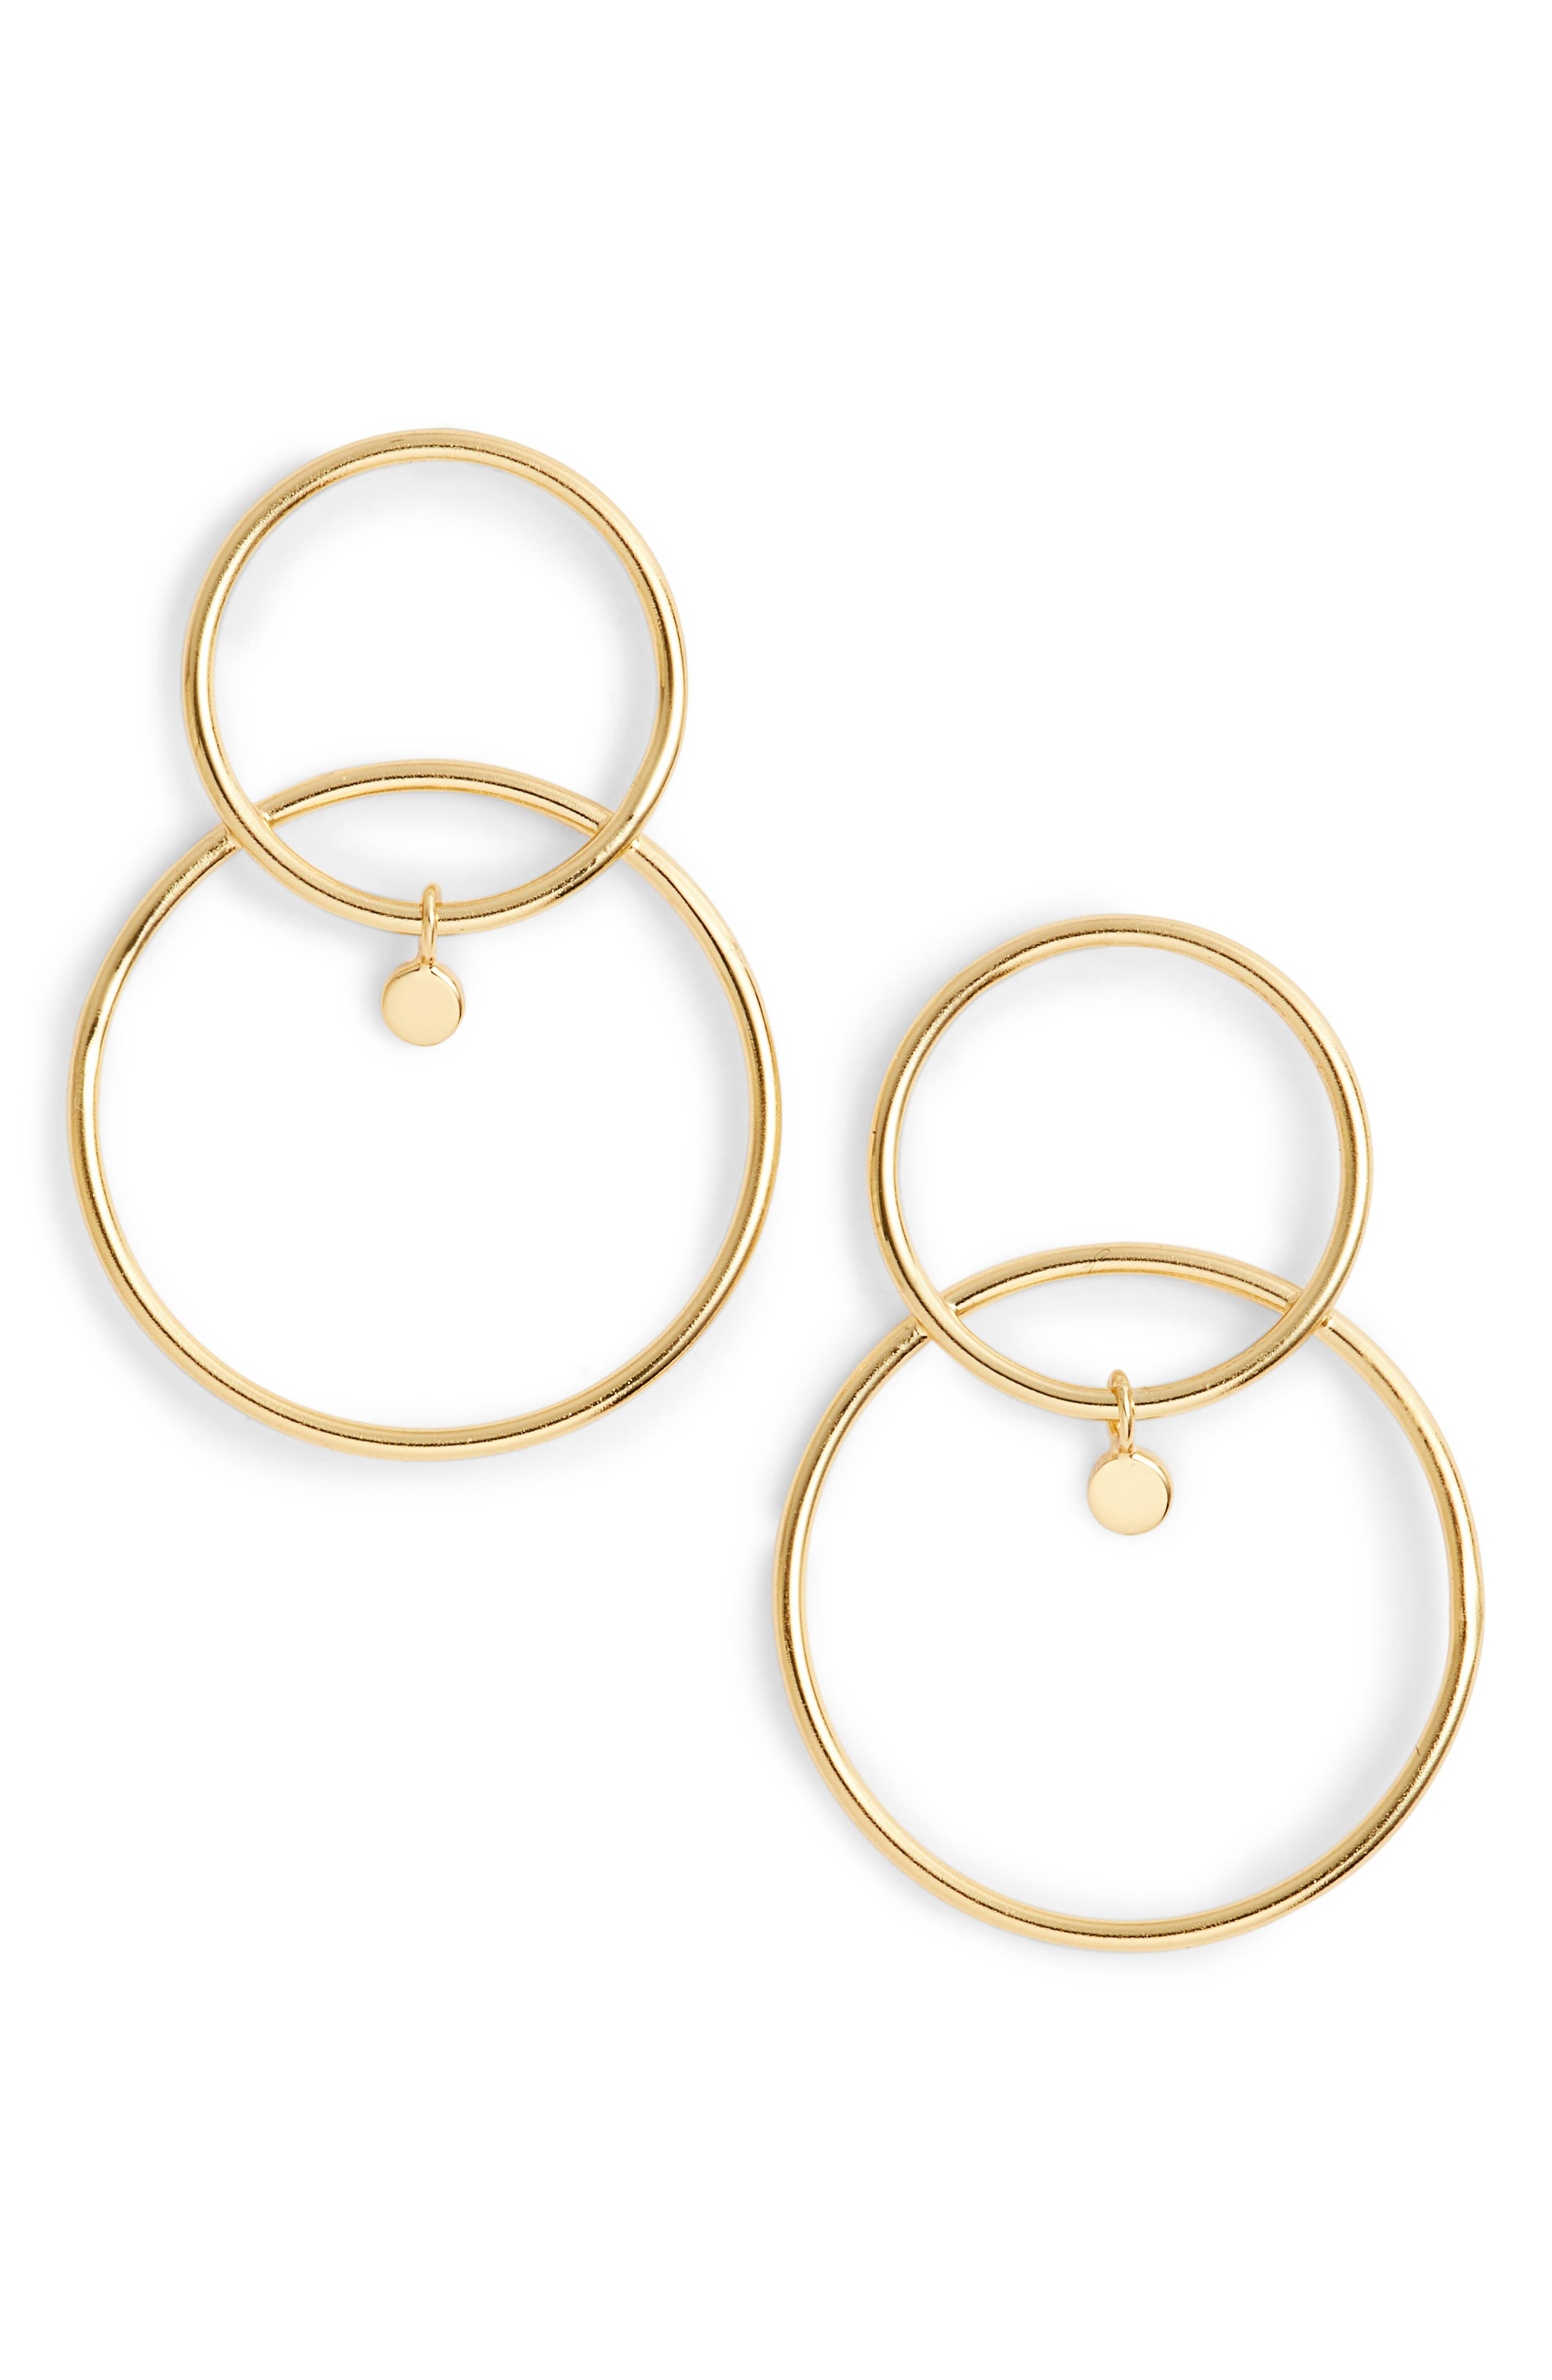 Double Open Ring Drop Earrings,                         Main,                         color, Gold